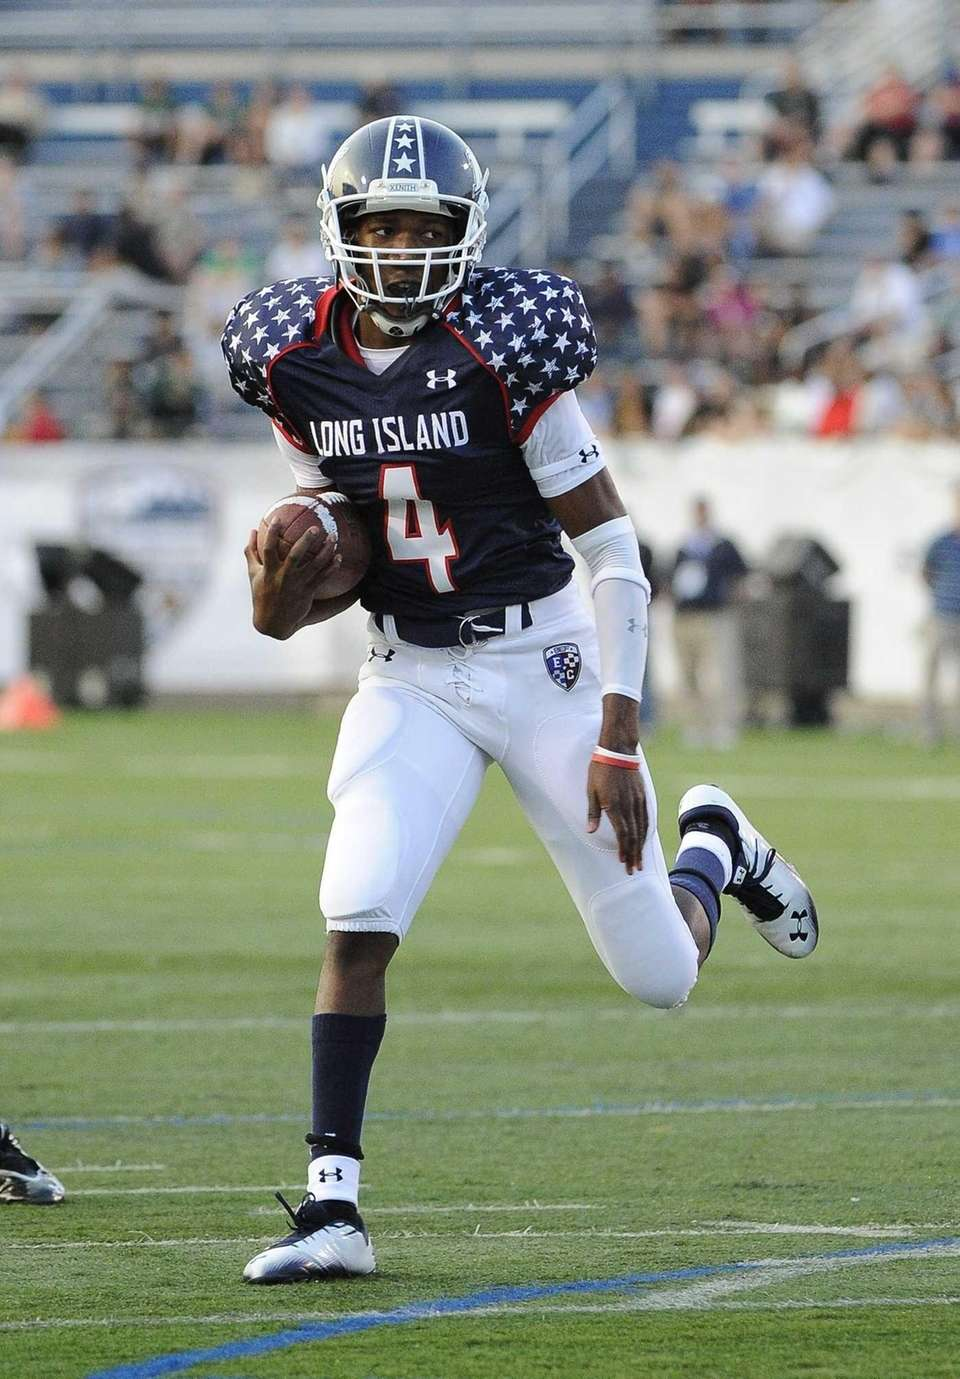 Long Island quarterback Isaiah Barnes drives the ball